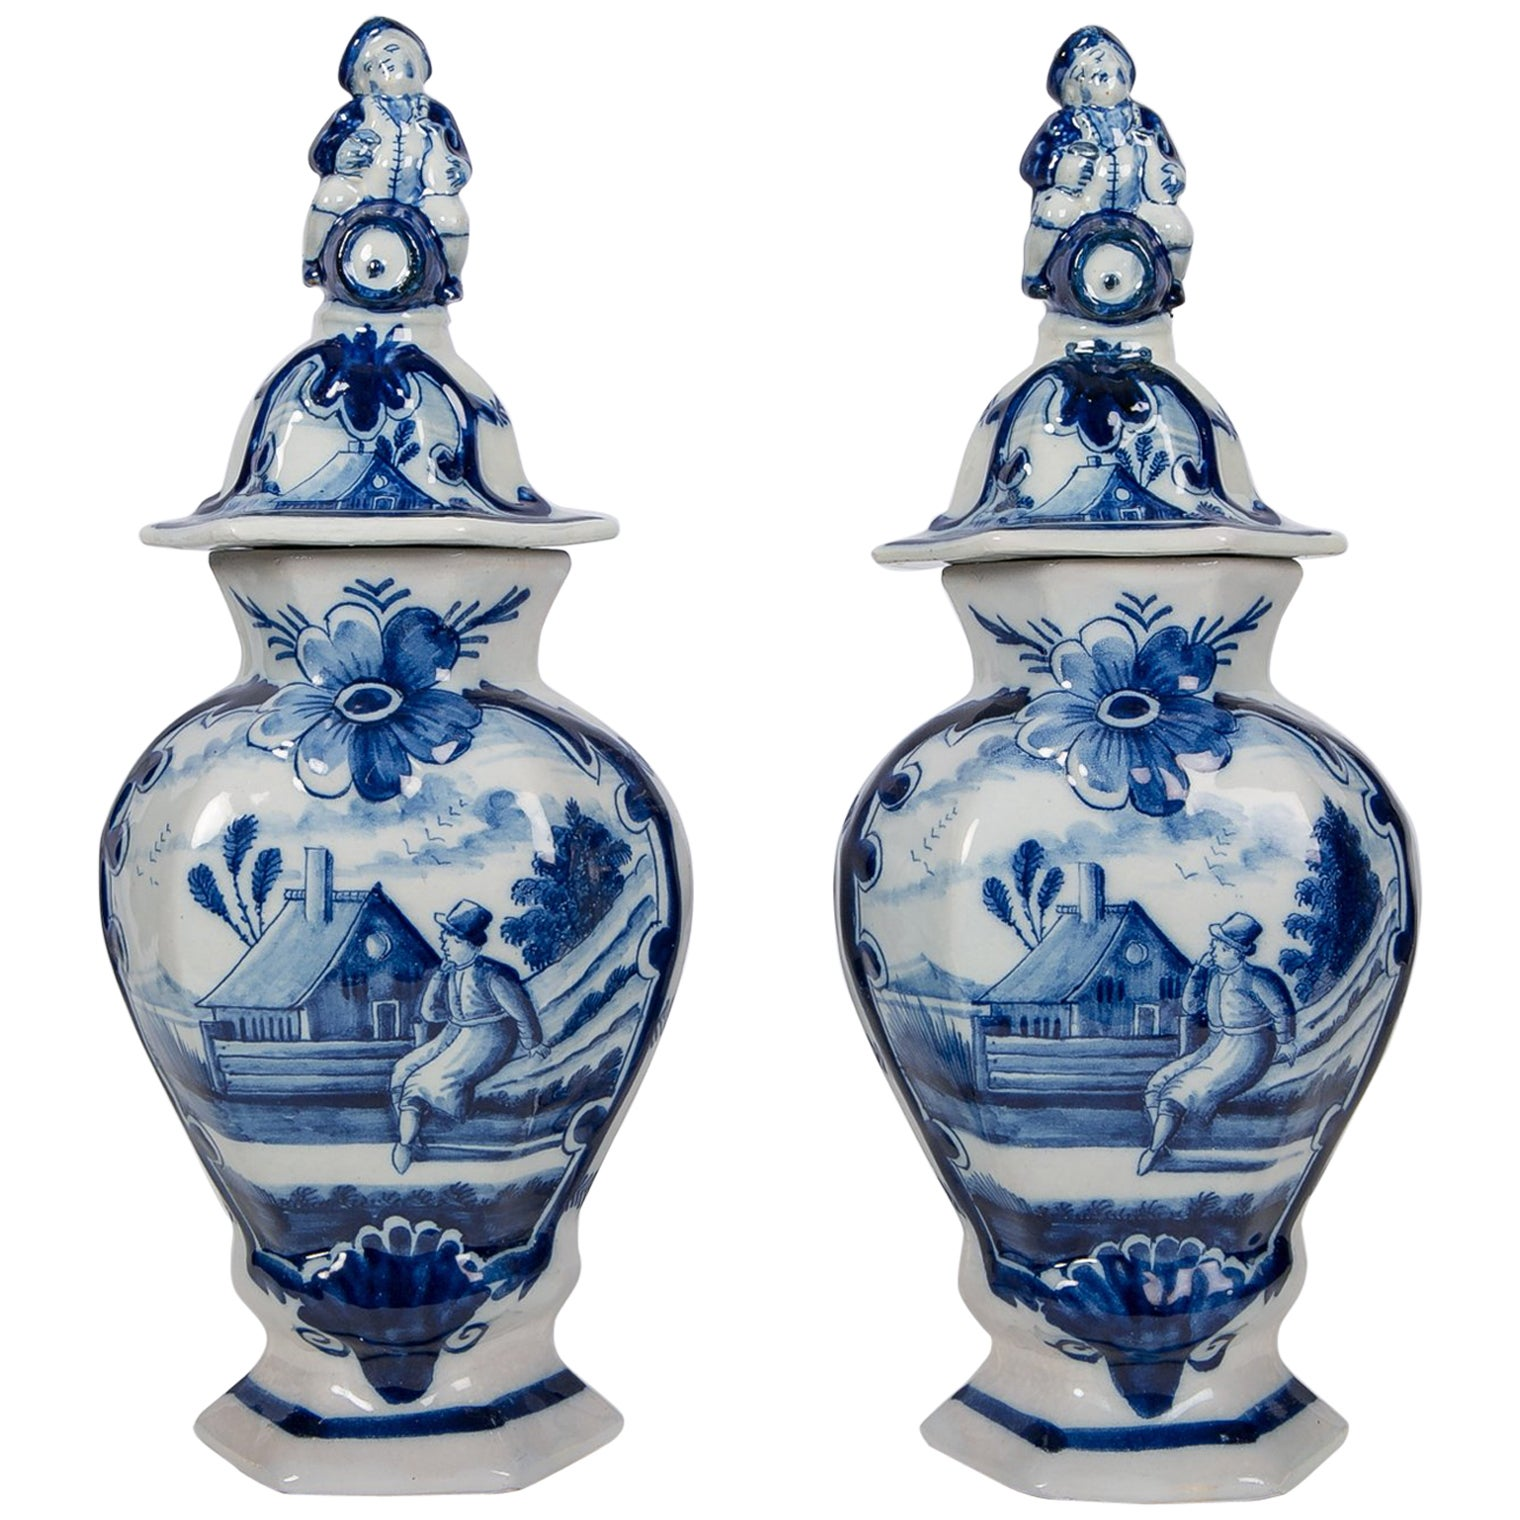 Pair of Blue and White Delft Mantle Vases Made by De Klaauw circa 1780